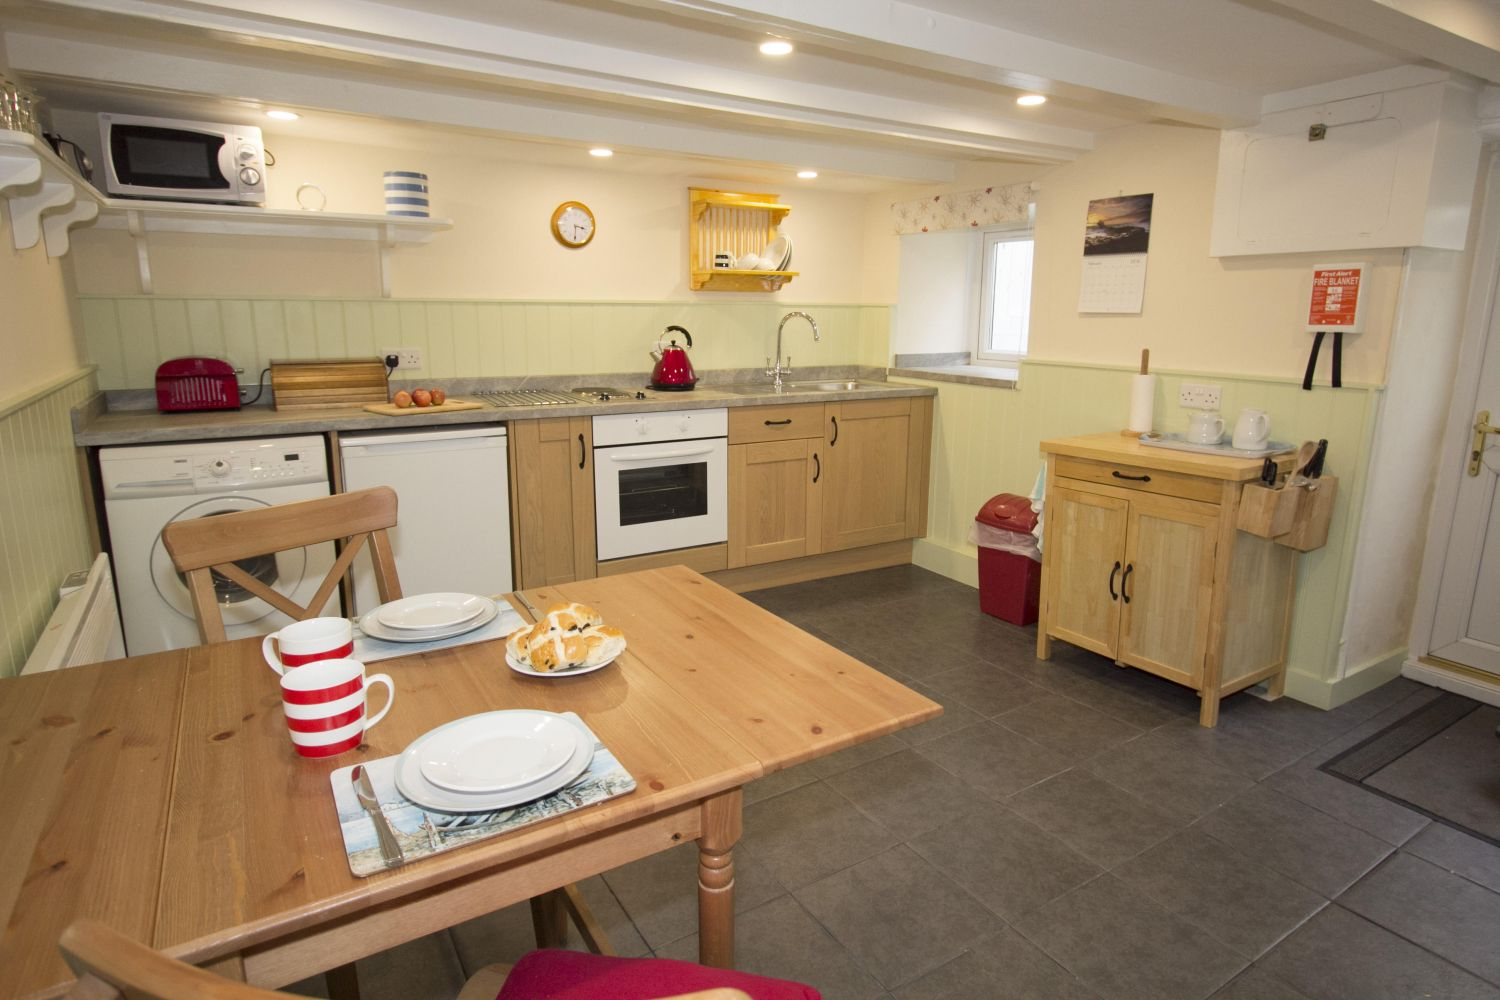 Bray Cottage - Porthleven Holiday Cottages